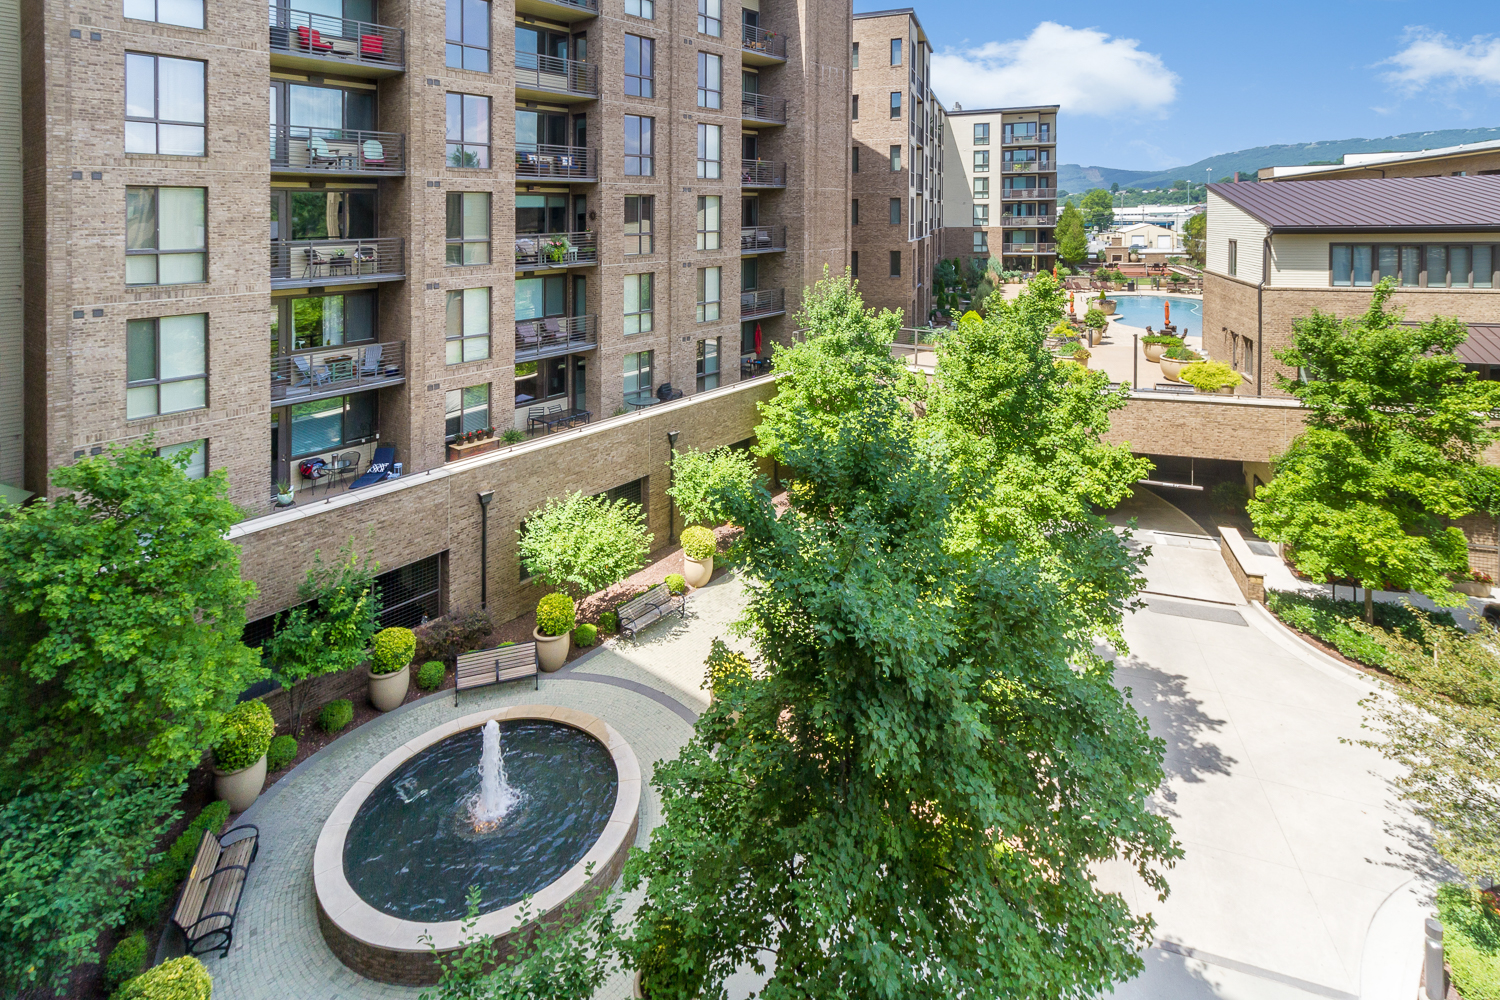 Northshore 1 Condo - Under Contract in less than 12 days in North Chattanooga